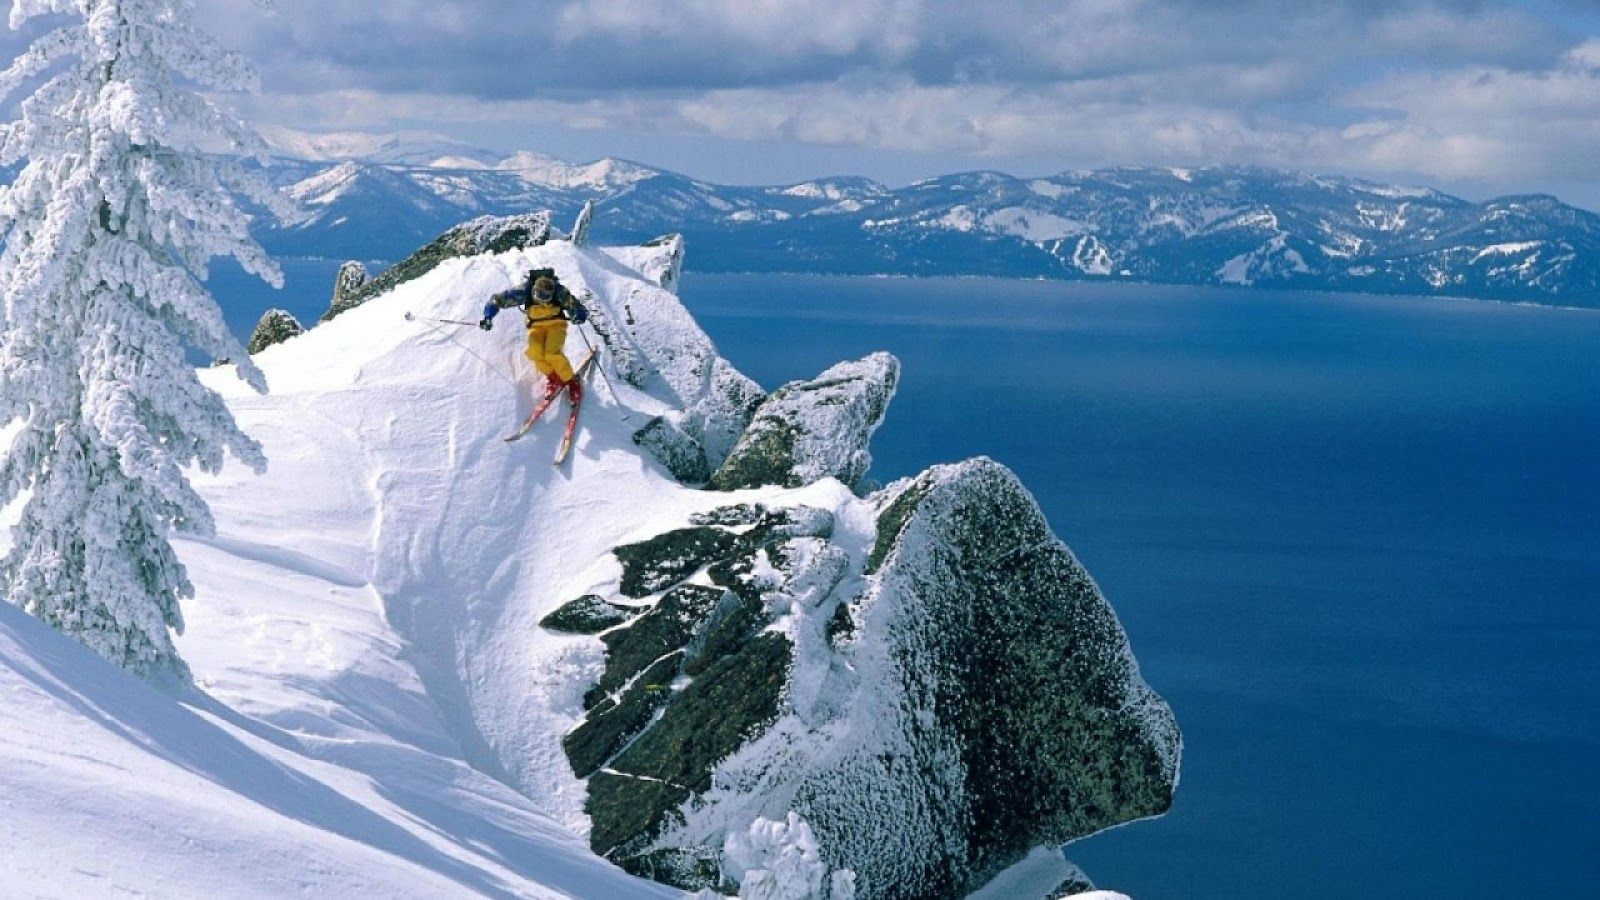 skiing wallpaper ski sports wallpapers in jpg format for free